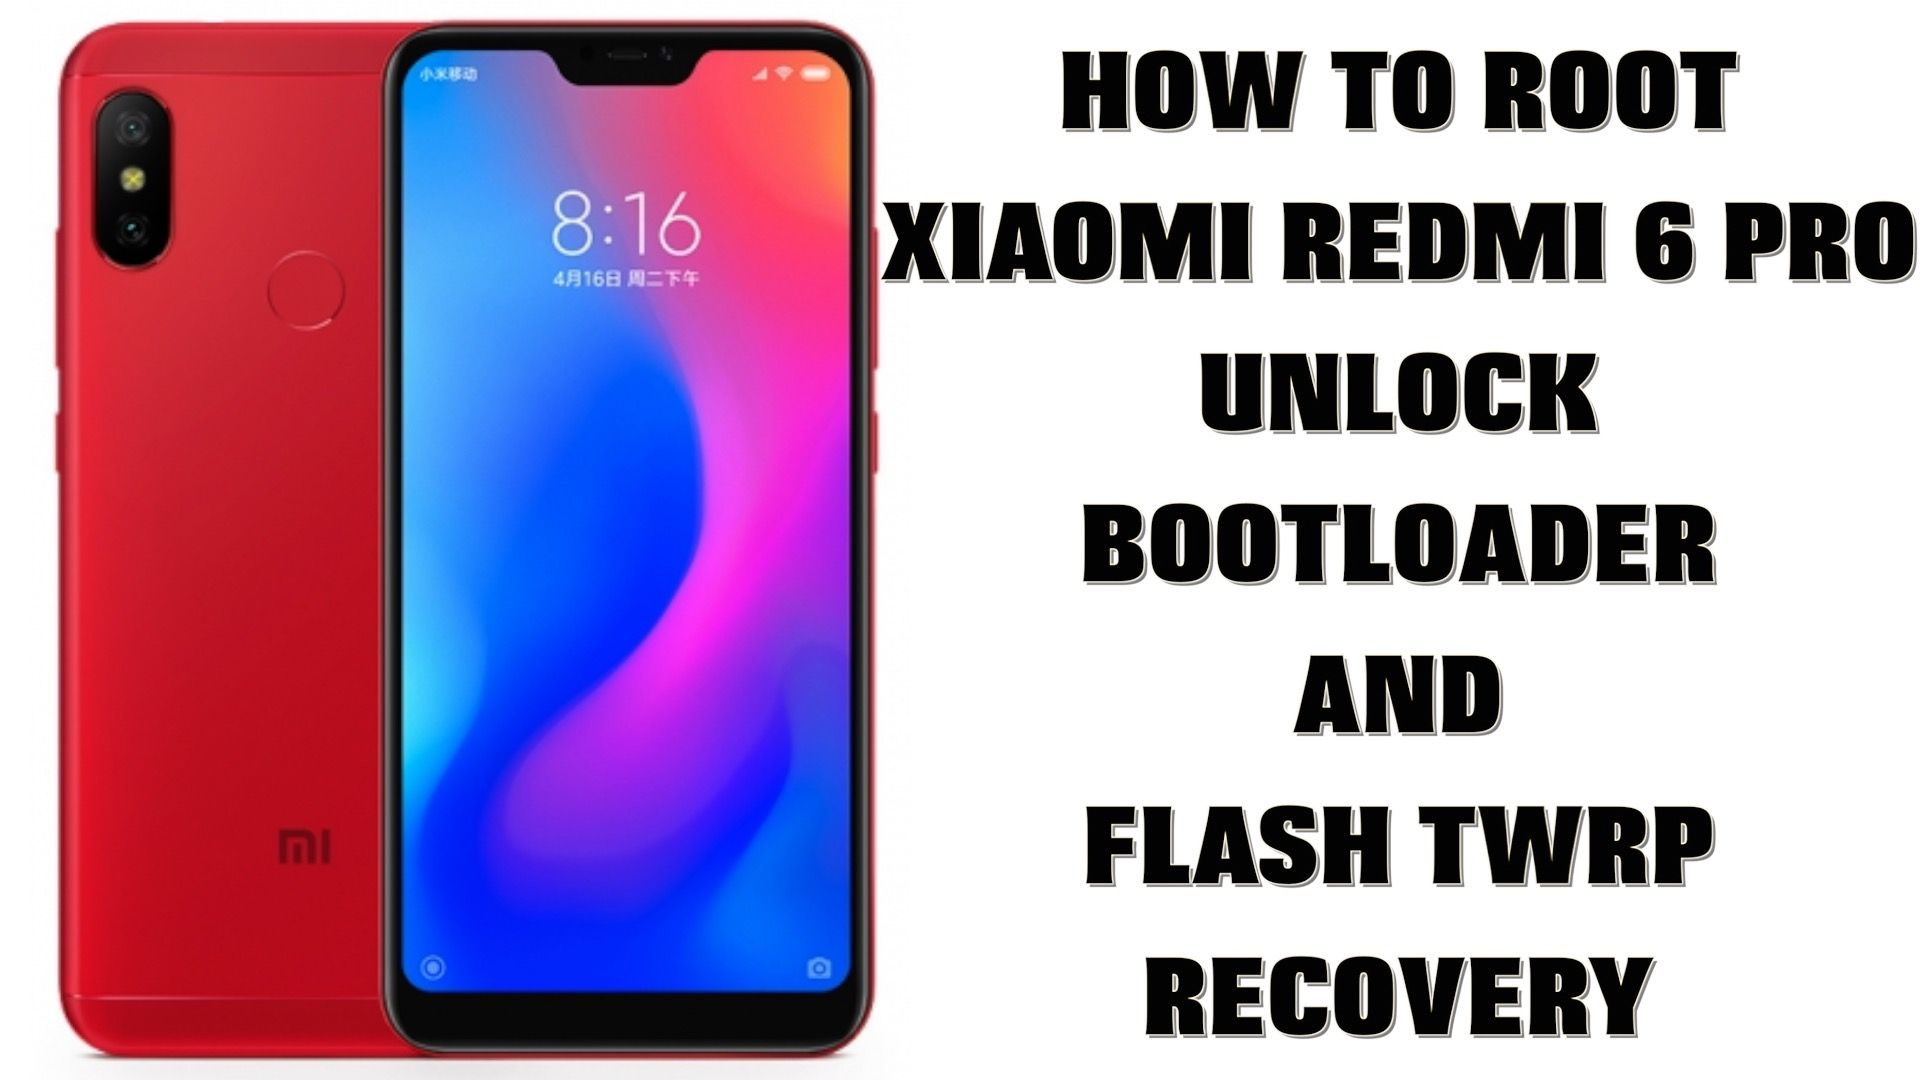 How To Root Xiaomi Redmi 6 Pro Unlock Bootloader And Flash TWRP